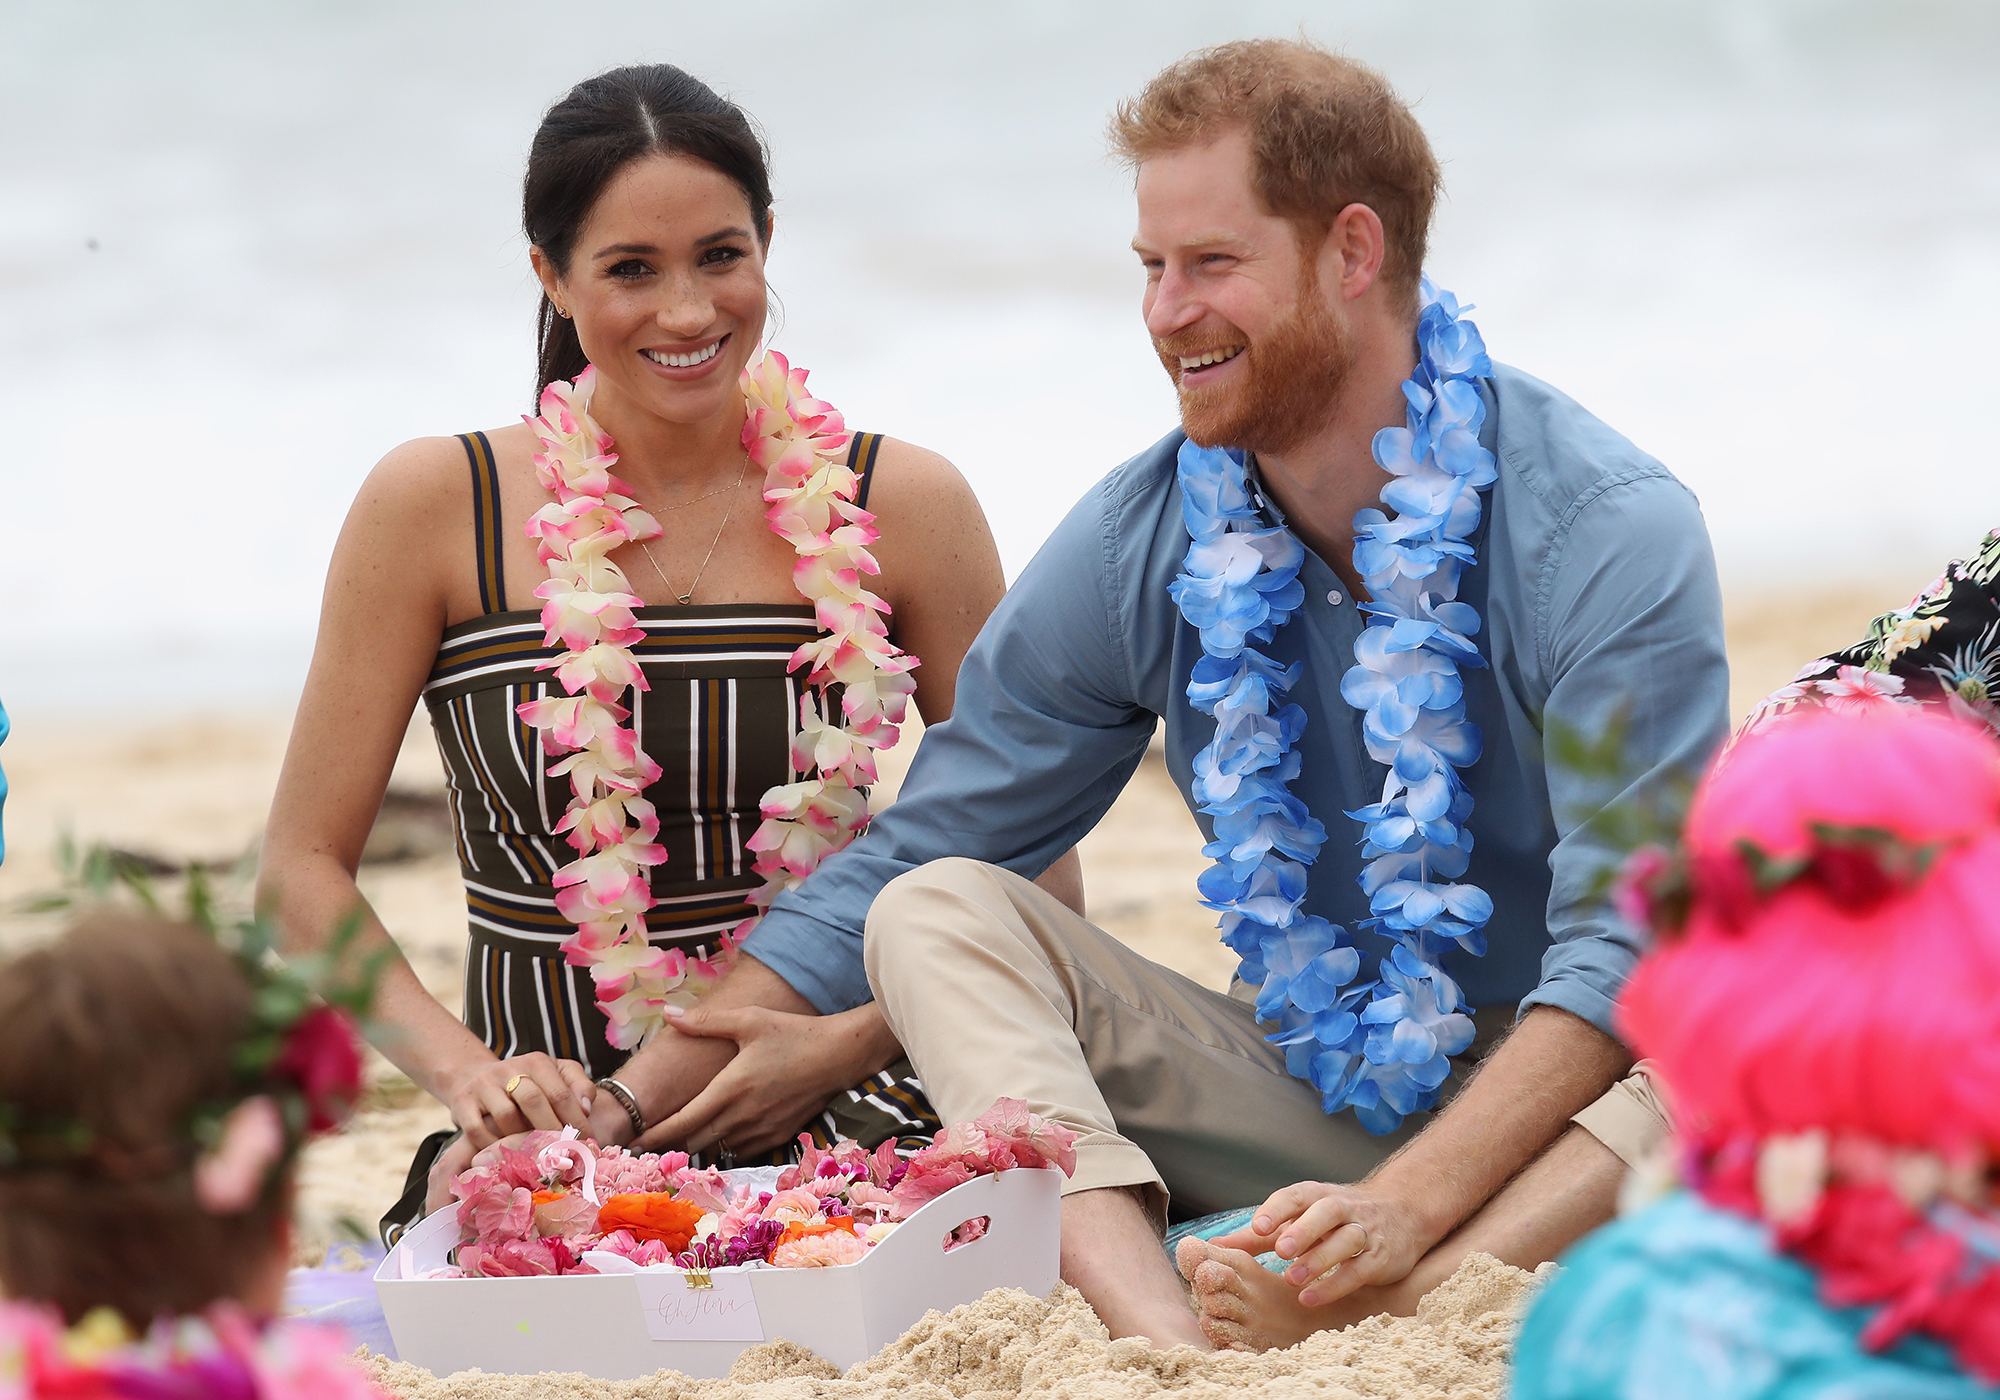 """Prince Harry and Duchess Meghan's 1st Year of Marriage - Hours after the pair touched down in Australia for their first international tour together , Kensington Palace announced on October 15, 2018 that Meghan was pregnant. """"Their Royal Highnesses The Duke and Duchess of Sussex are very pleased to announce that The Duchess of Sussex is expecting a baby in the Spring of 2019,"""" the statement read."""